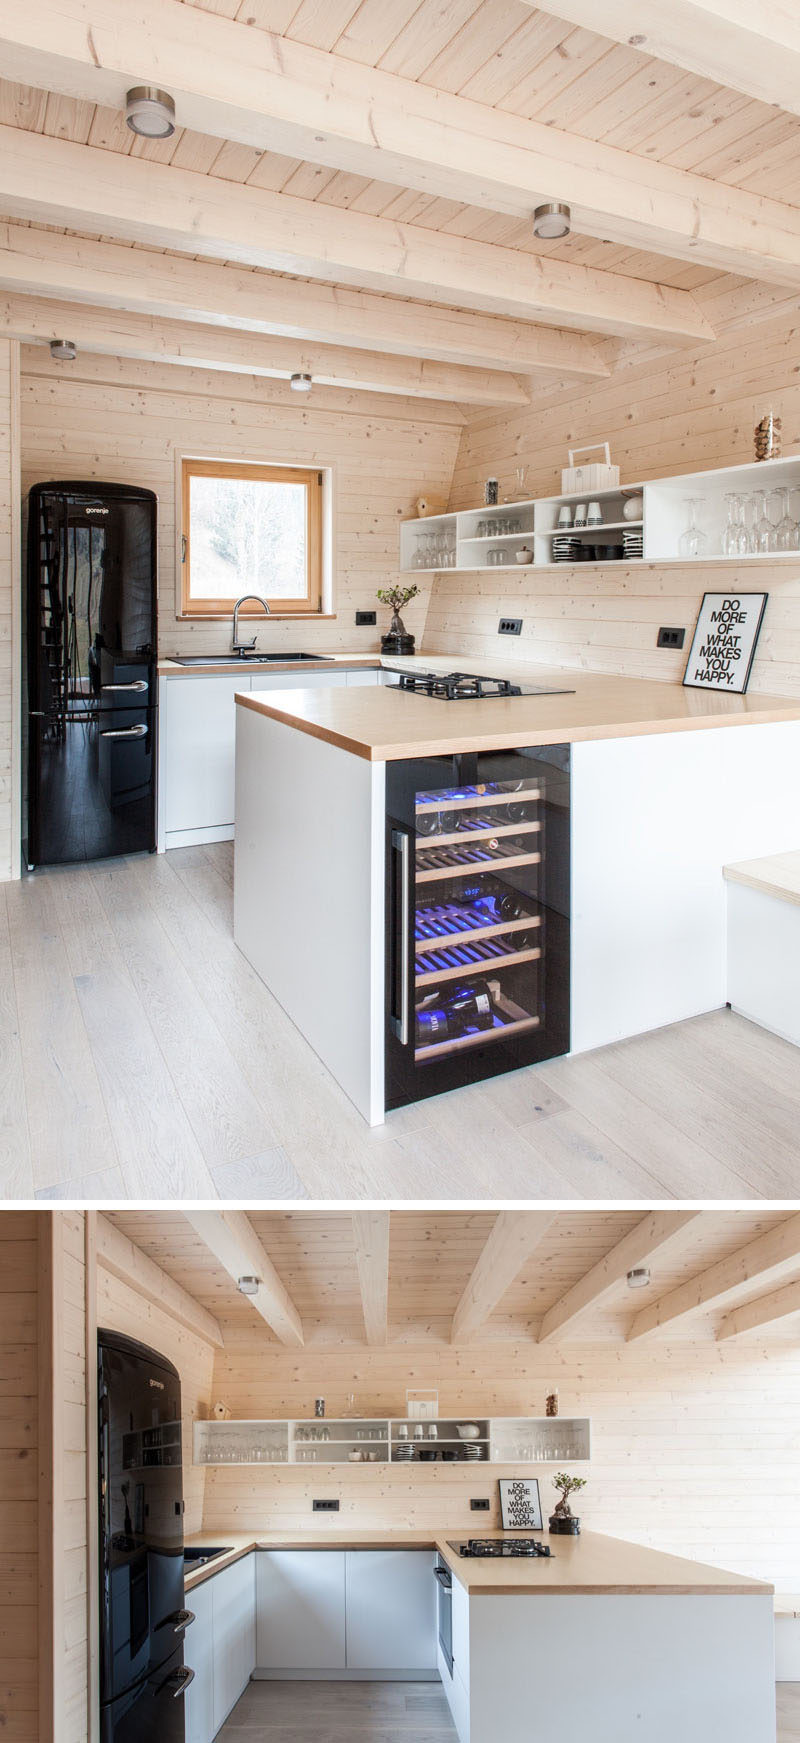 This light wood kitchen has a u-shaped layout with white hard-ware free cabinets, a wood countertop and open shelves that float on the wall. Black elements, like the fridges and sink and artwork, are also featured.